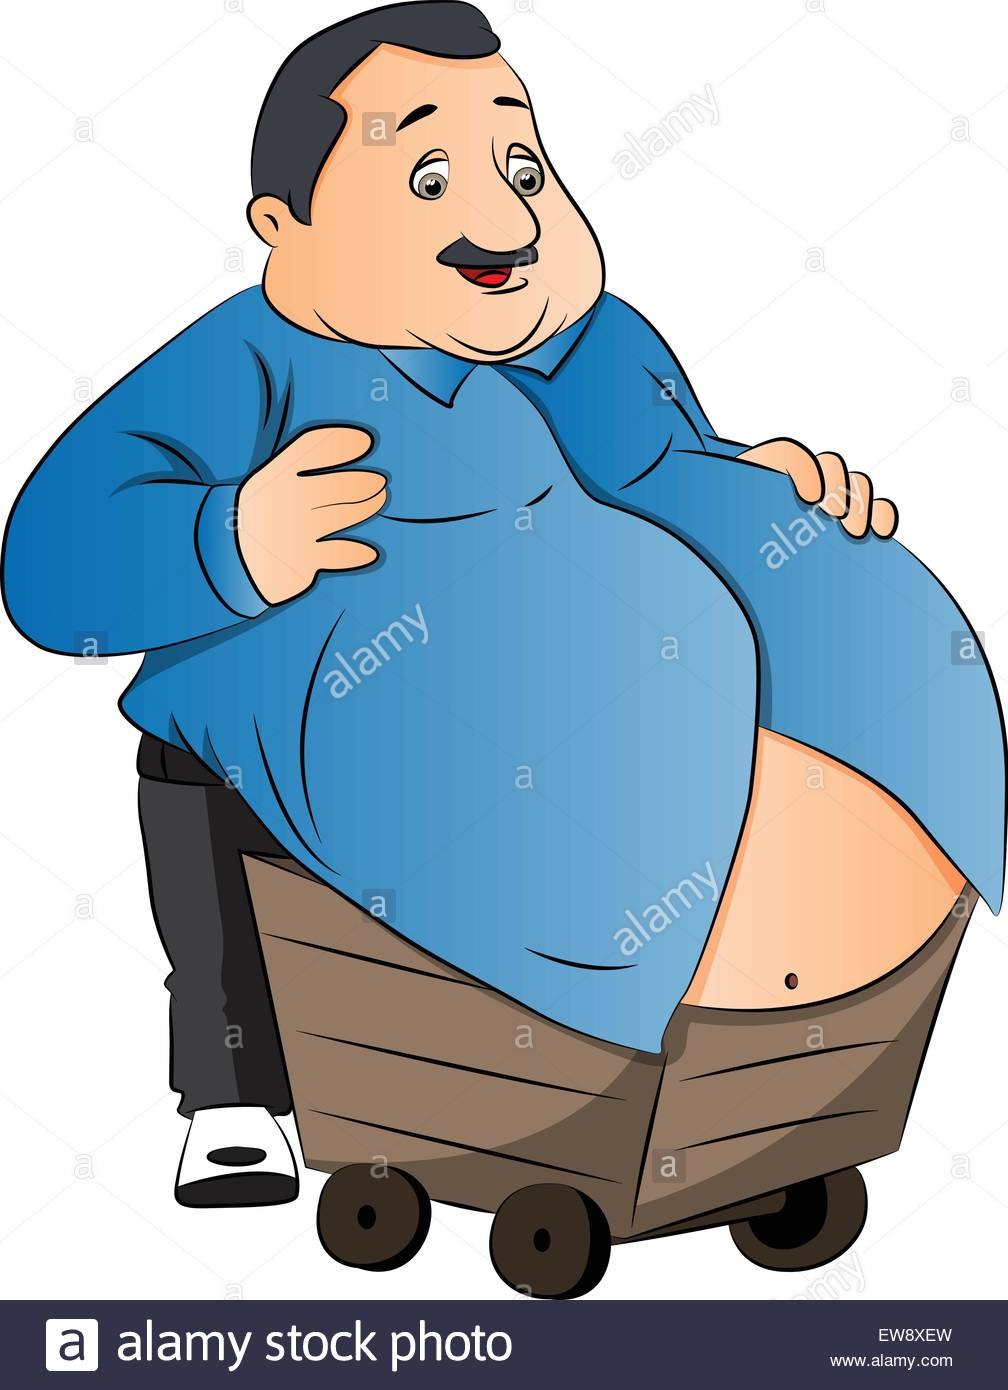 1008x1390 Obese Man Stock Vector Images